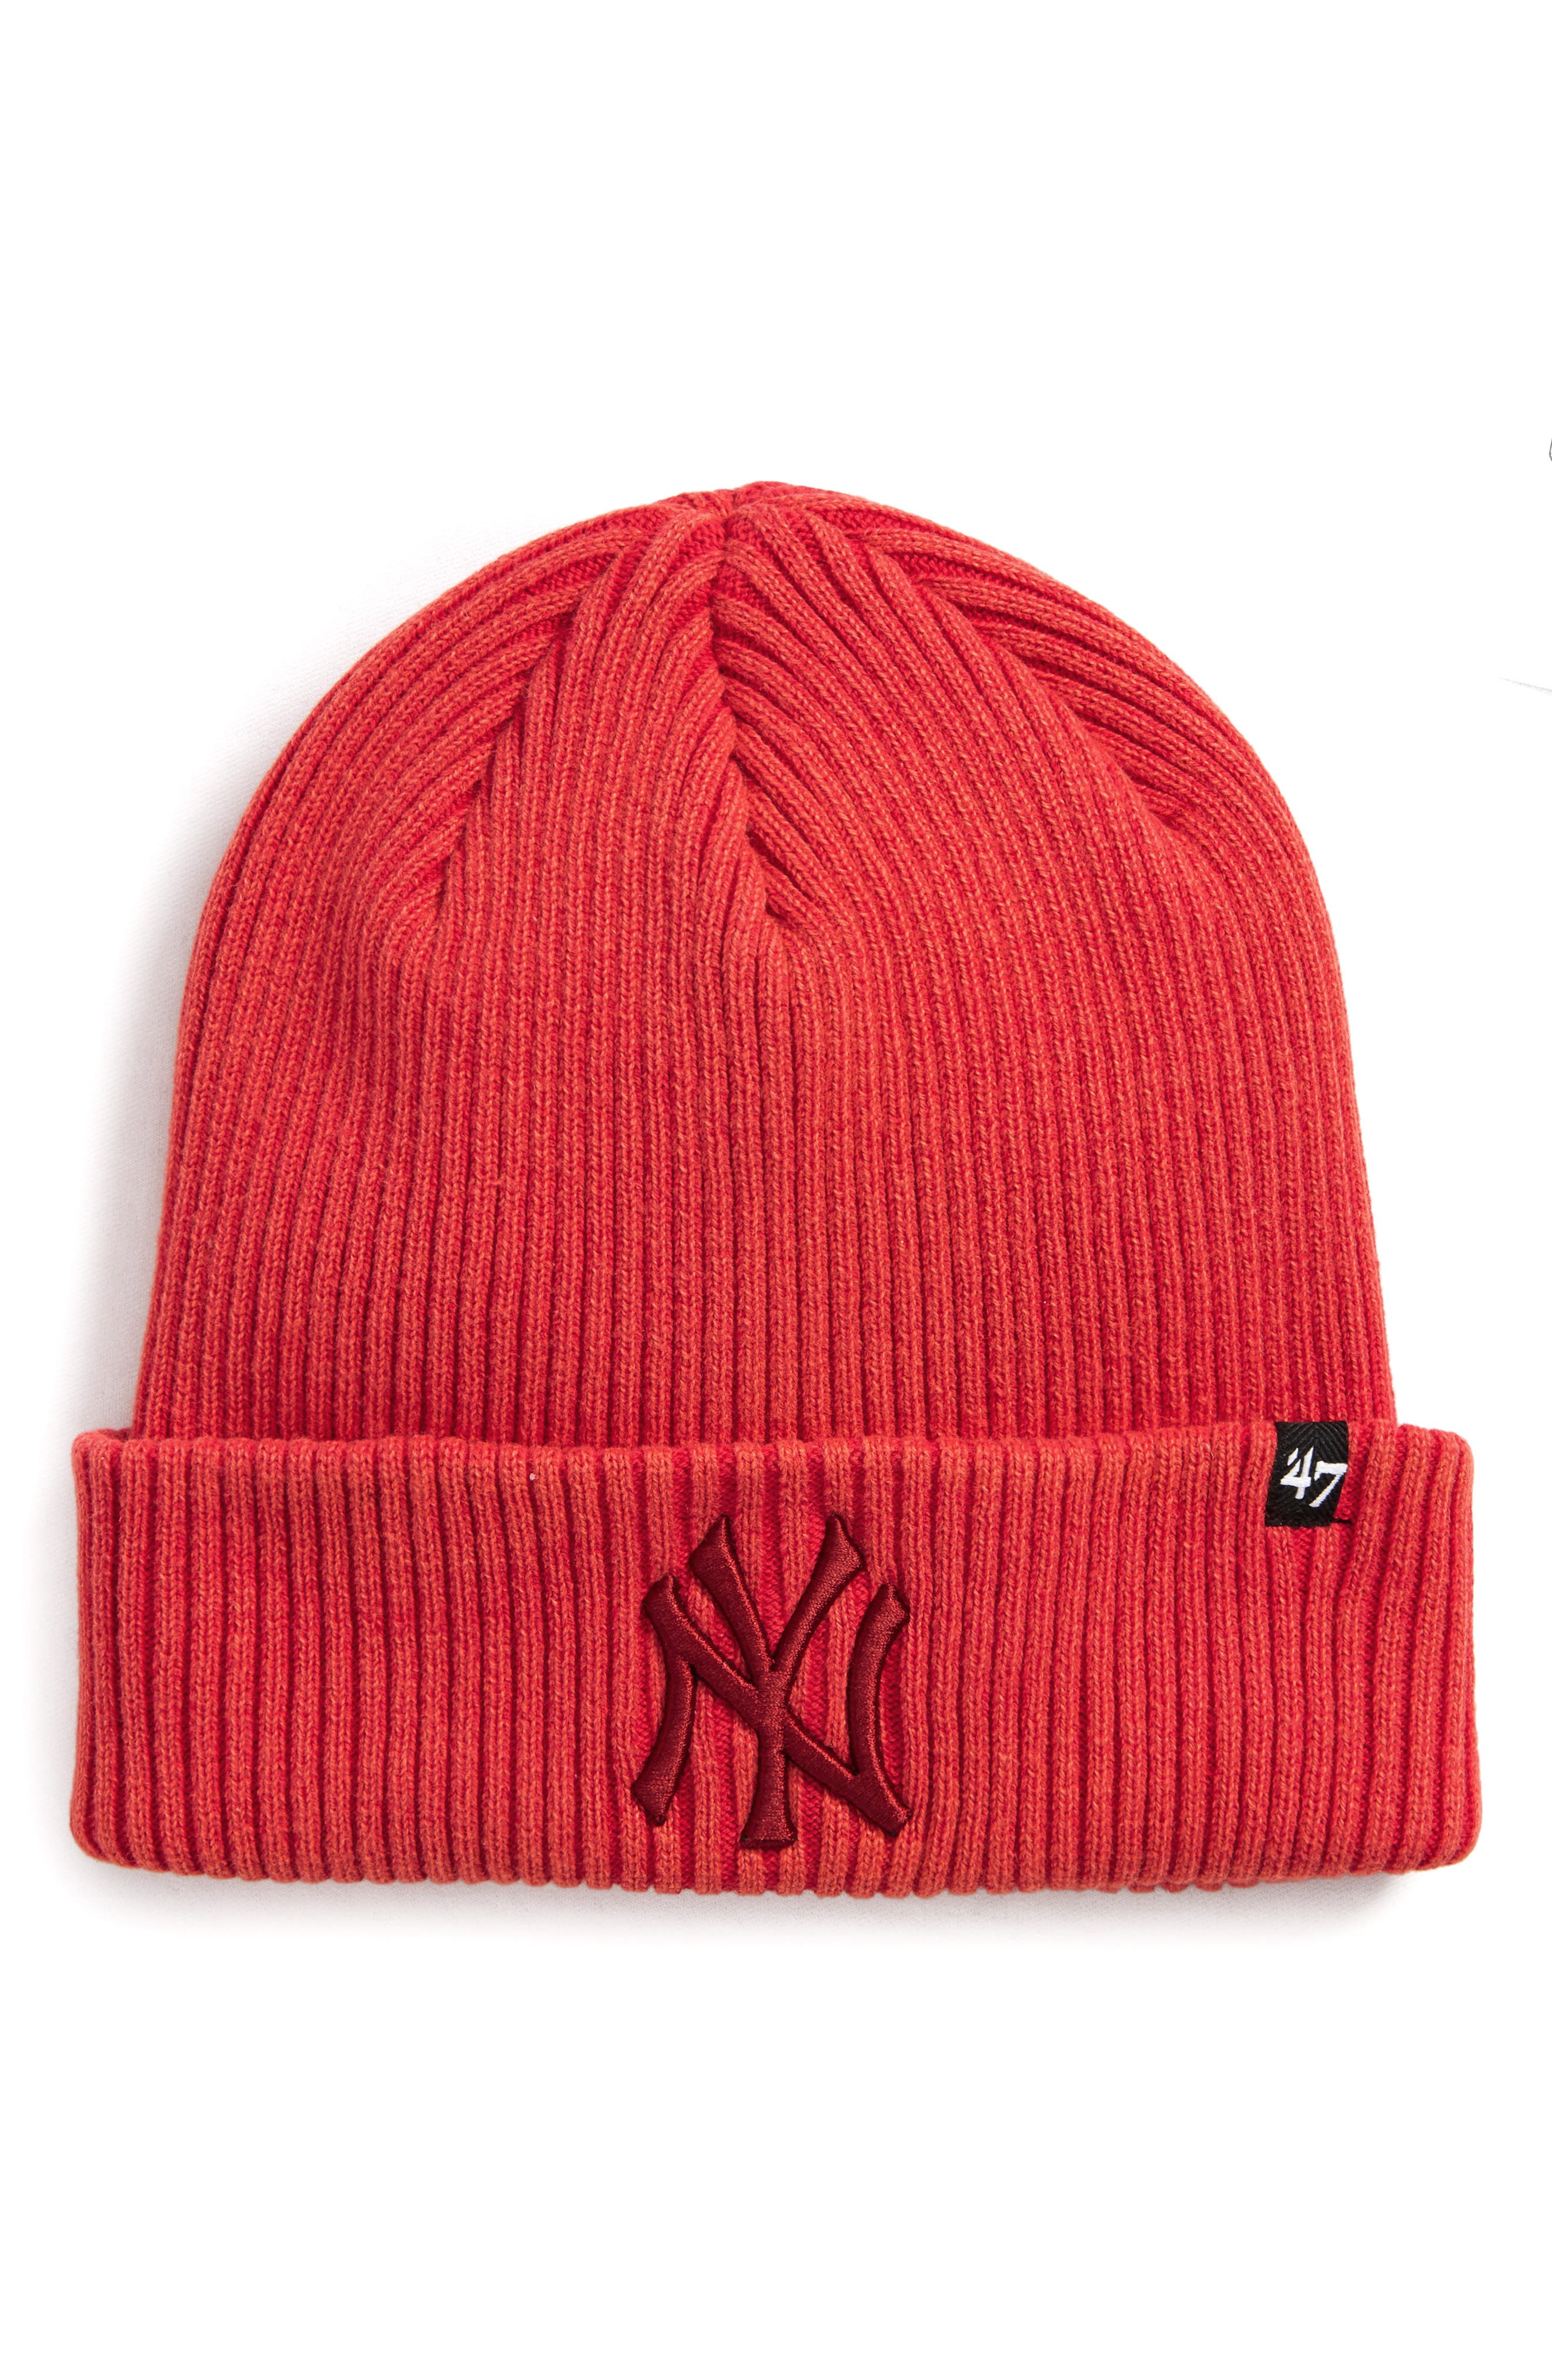 New York Yankees Northwood Beanie,                         Main,                         color, Red